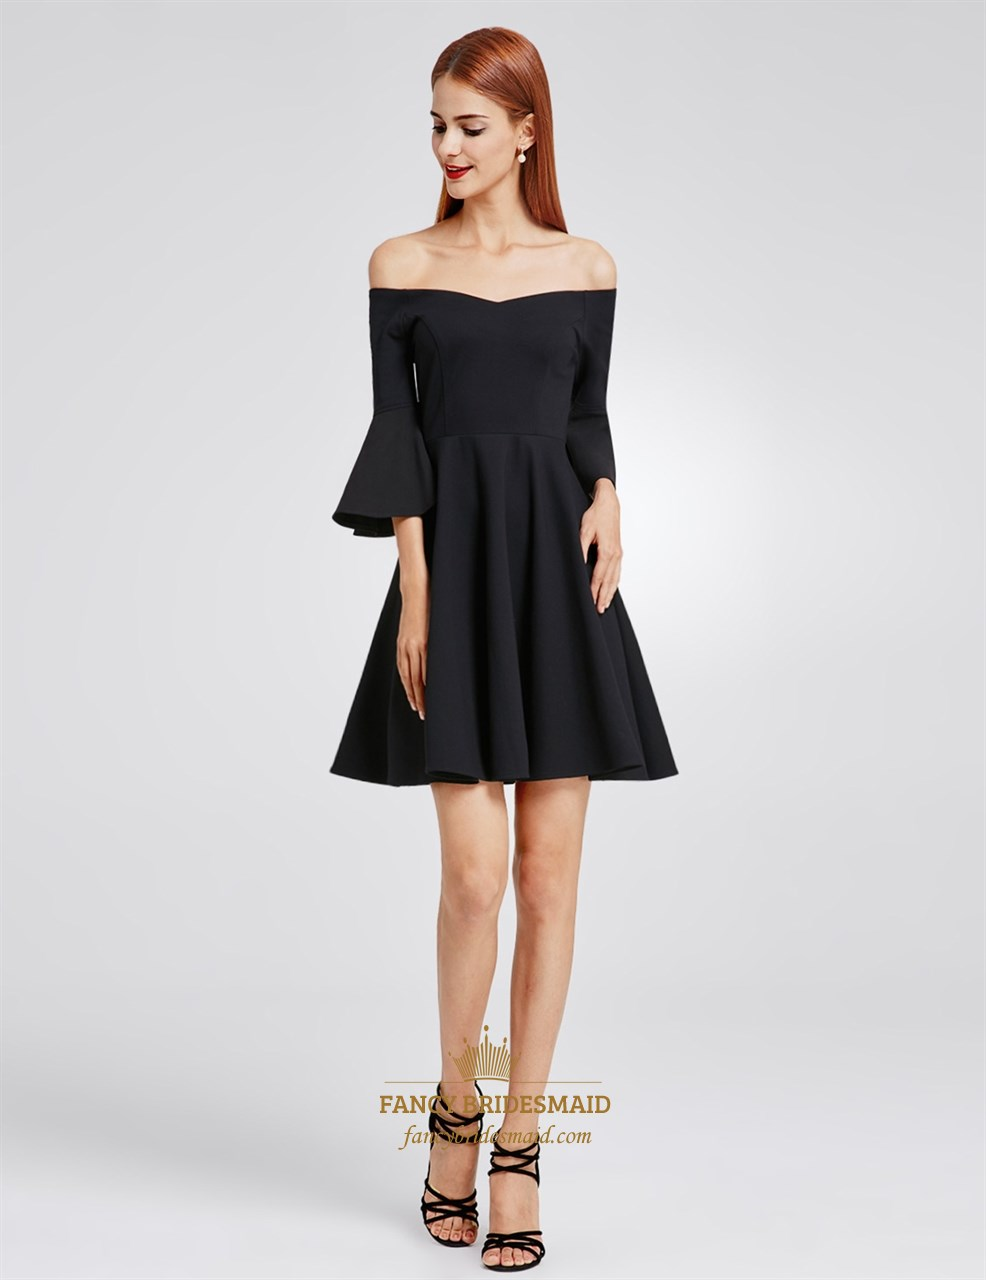 Black Off The Shoulder A Line Short Homecoming Dress With